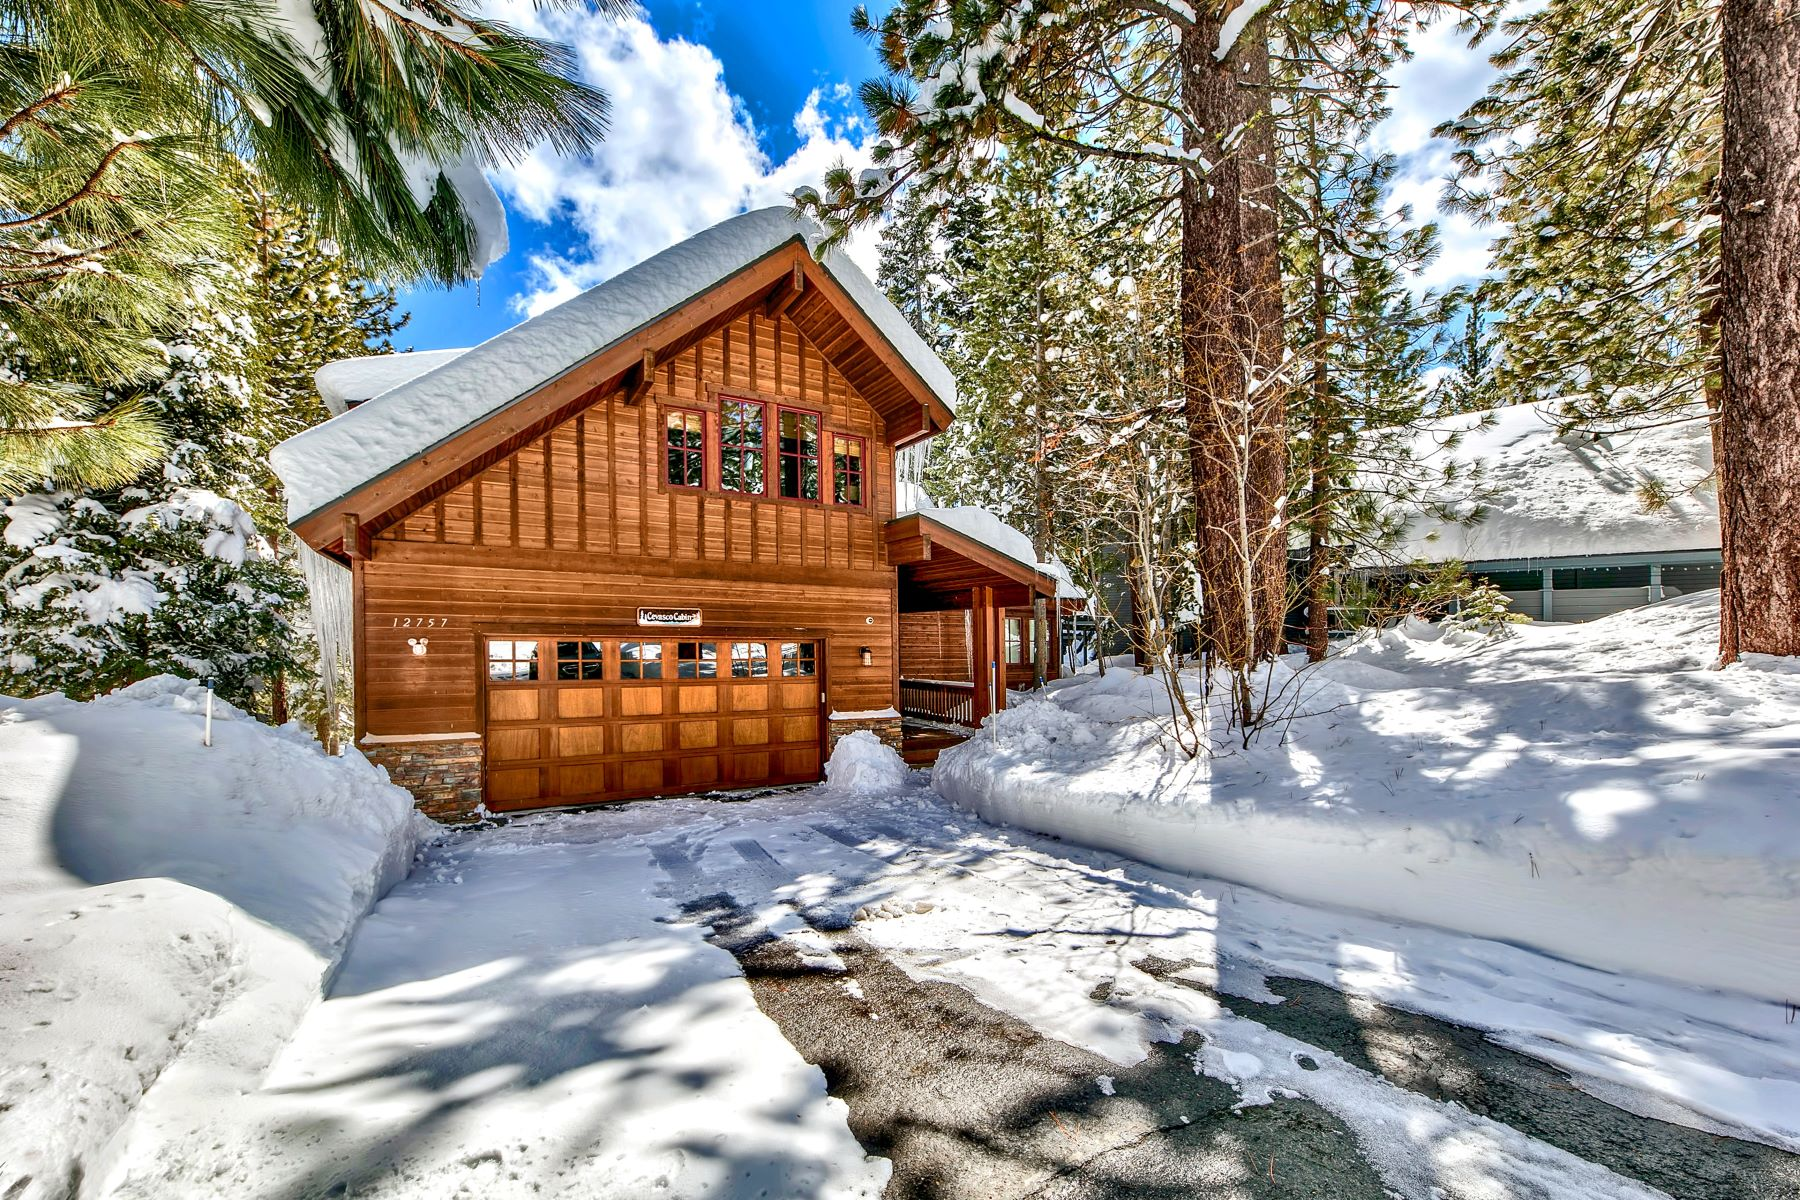 Single Family Homes for Active at Like New Mountain-Modern 12757 Peregrine Dr Truckee, California 96161 United States